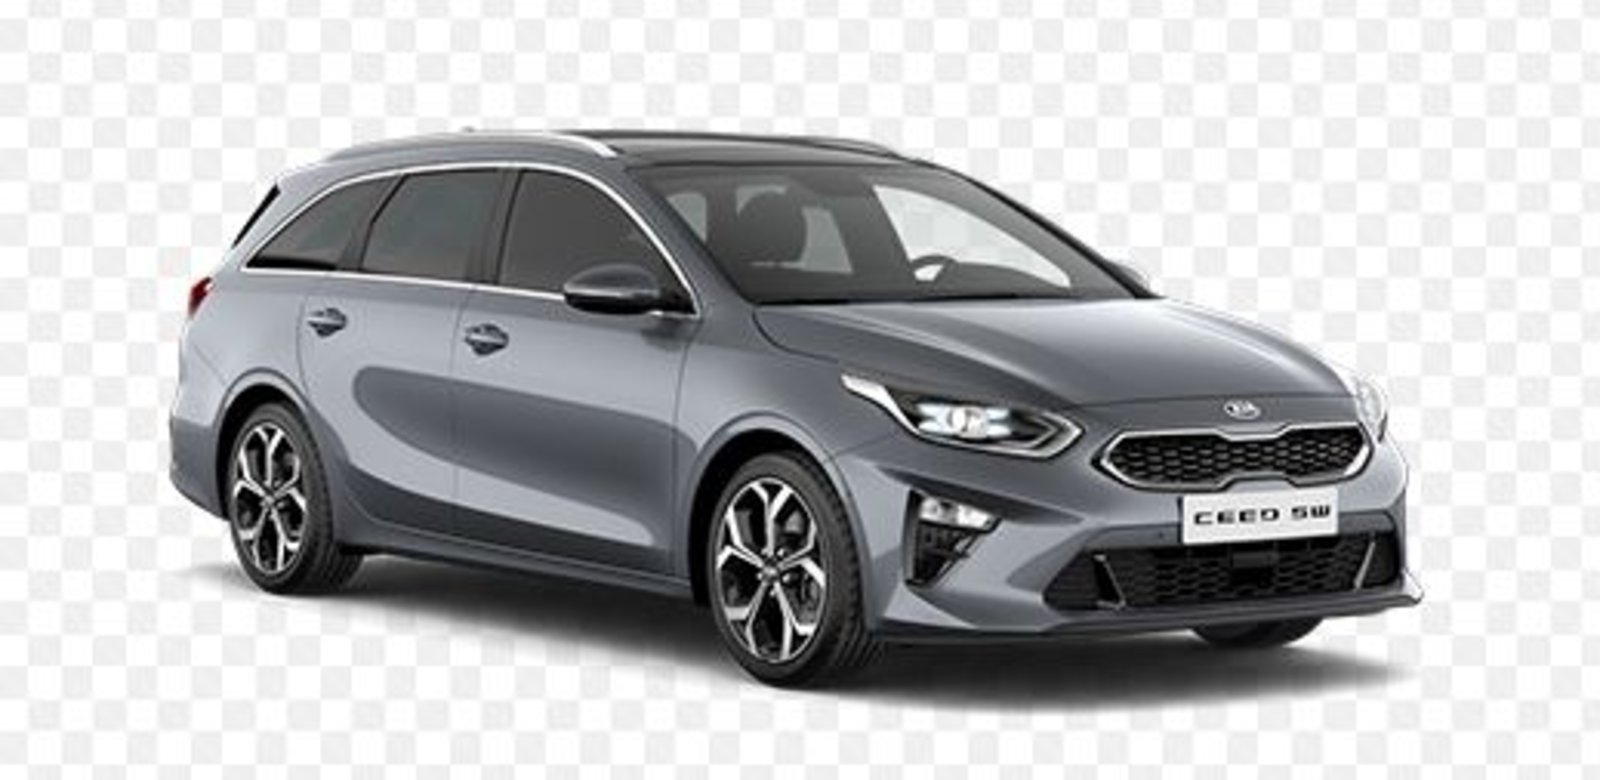 KIA CEED cee'd Sportswagon 1.4 NEUES MODELL*COOL*6d TEMP* Autosoft BV, Enschede